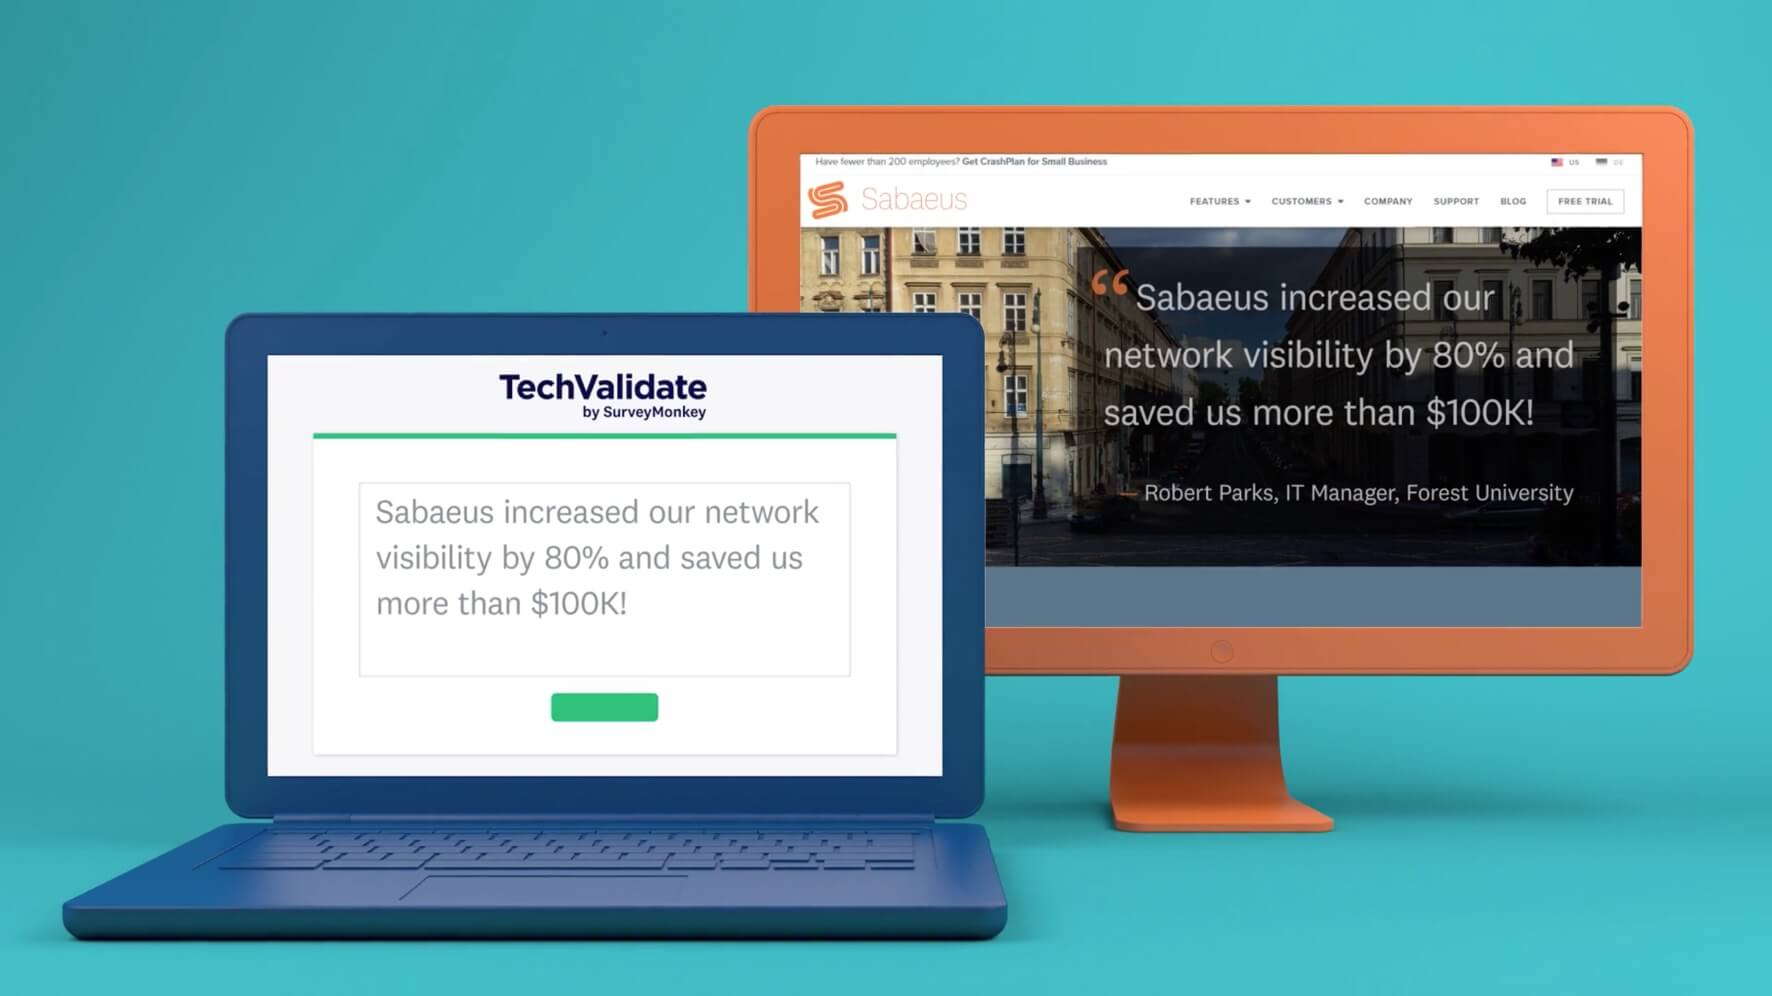 TechValidate product